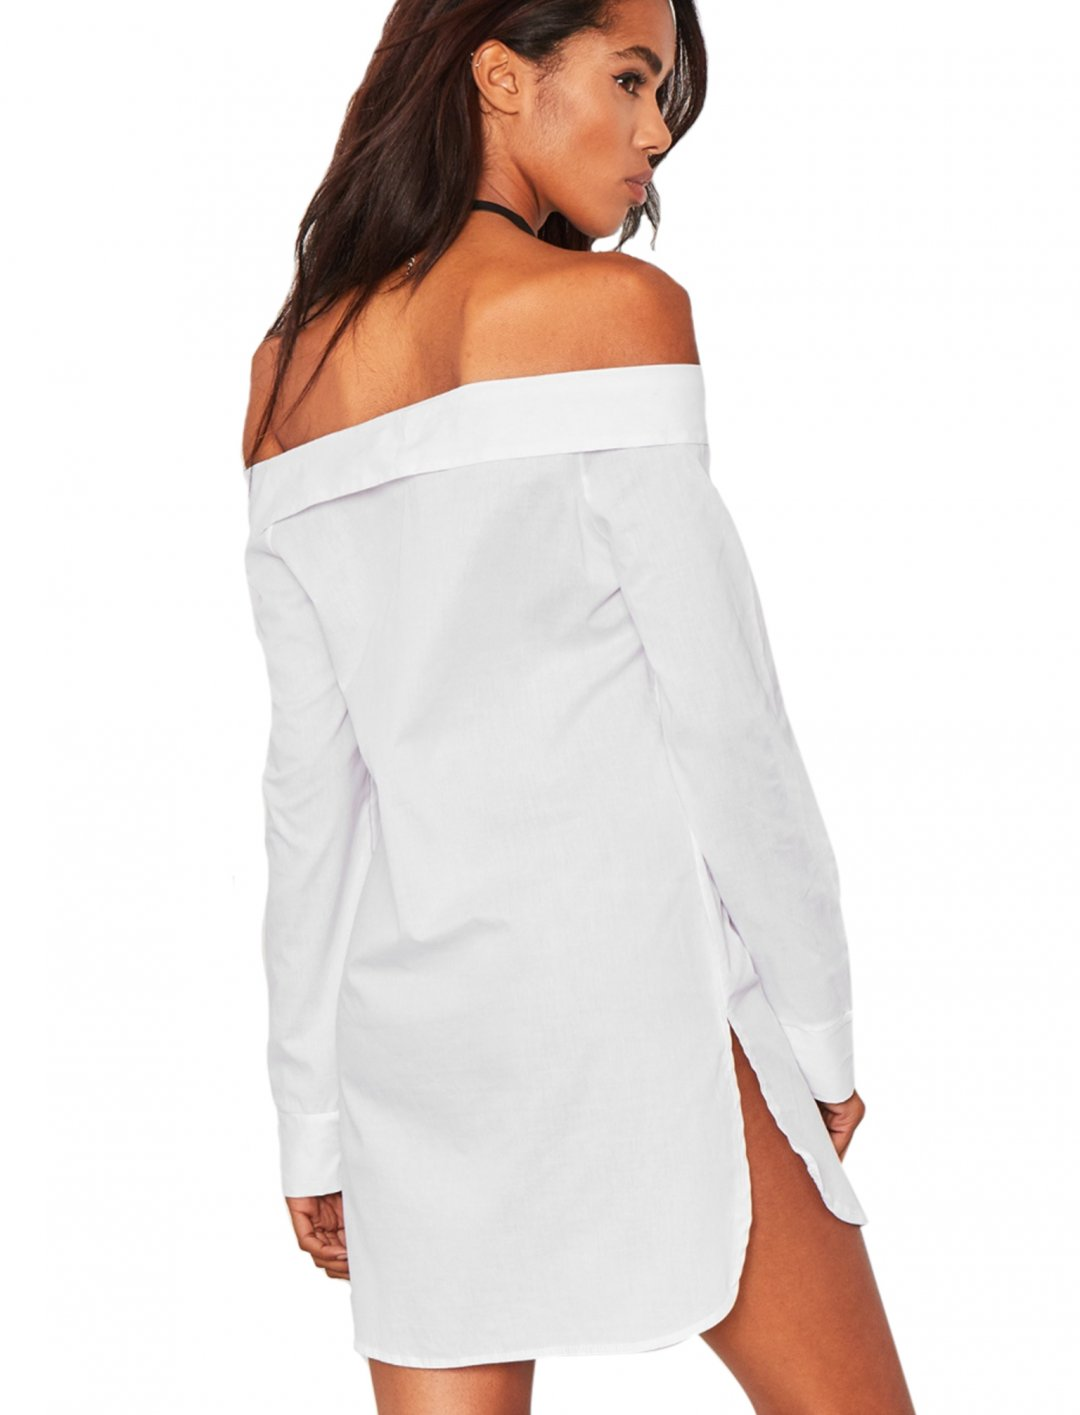 White Bardot Shirt Dress Clothing Missy Empire